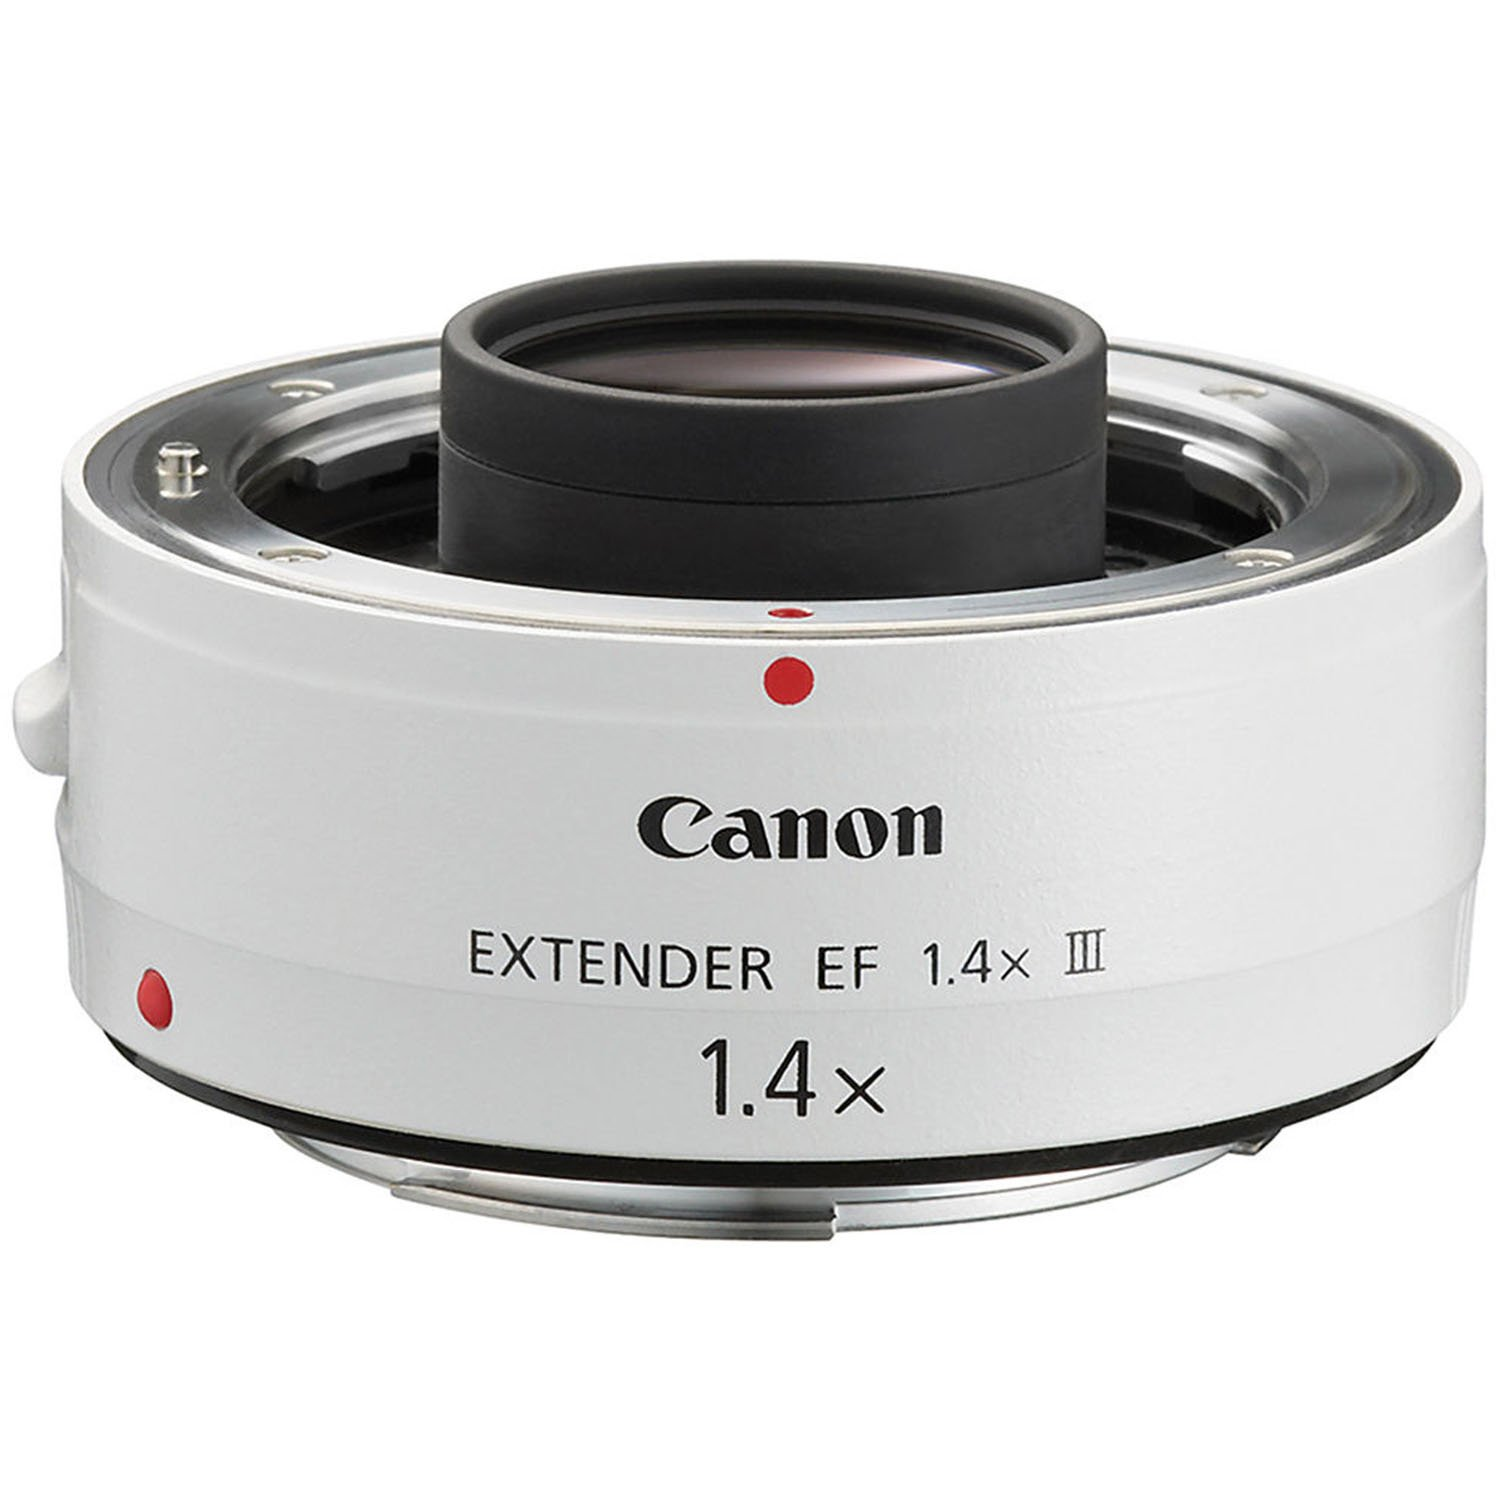 Canon EF 1.4X III Telephoto Extender for Canon Super Telephoto Lenses by Canon